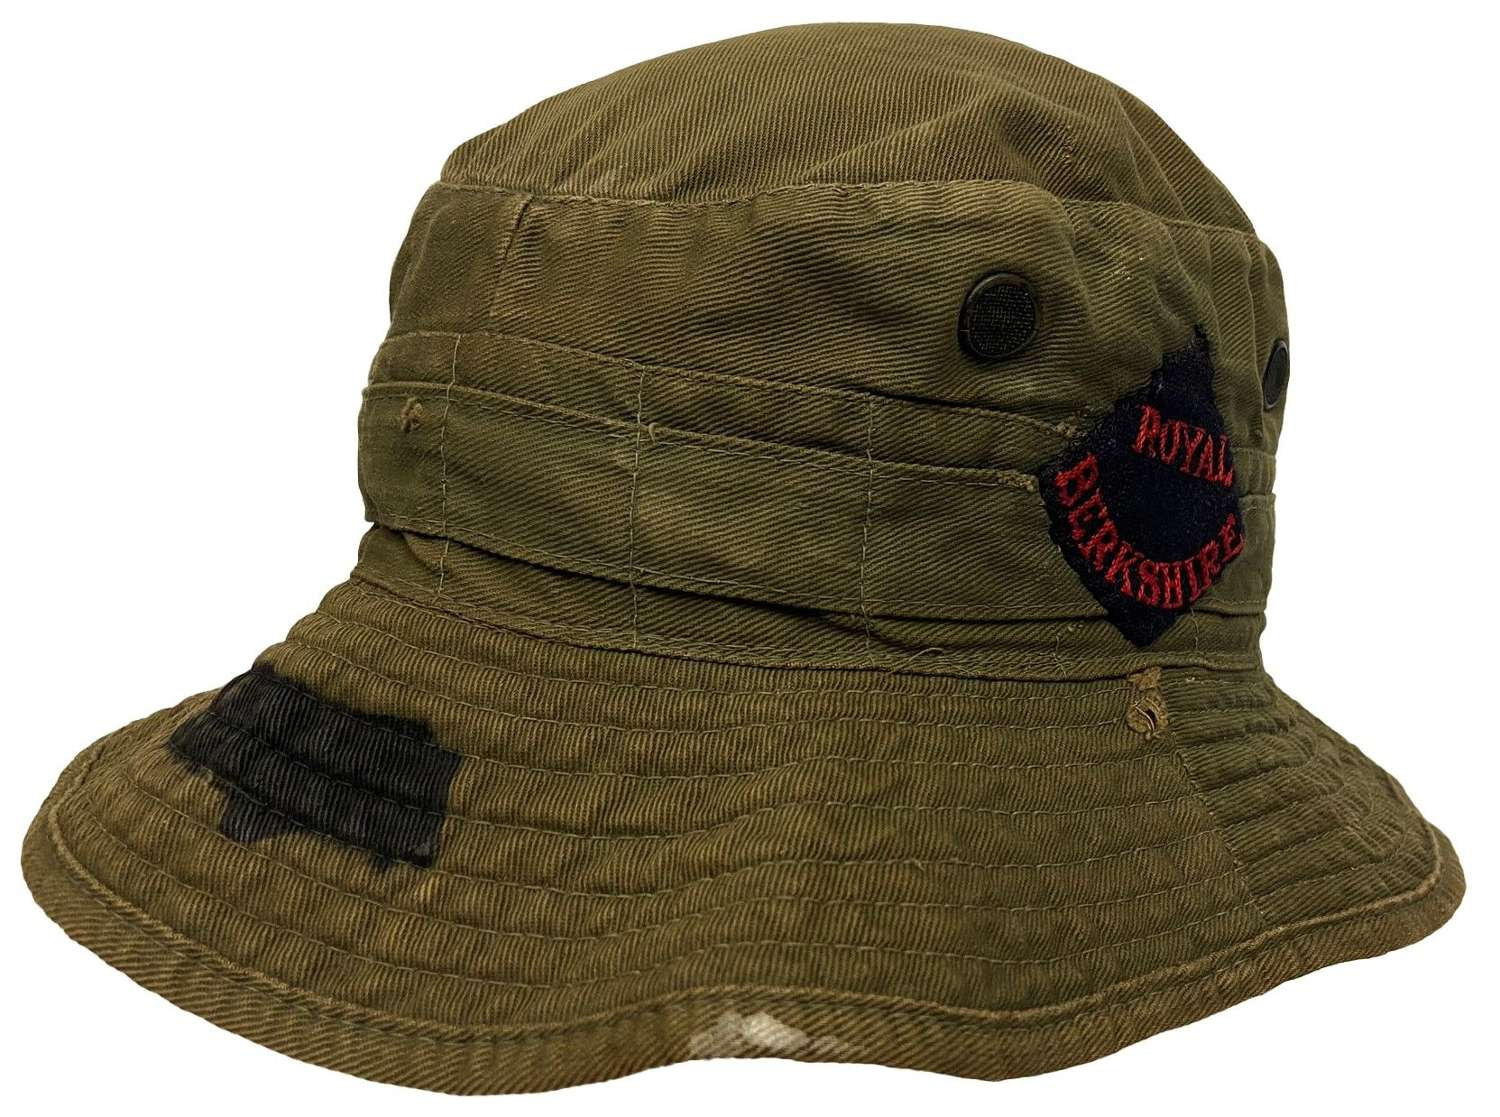 Original 1945 Dated British Army Jungle Service Hat - Size 7 1/4